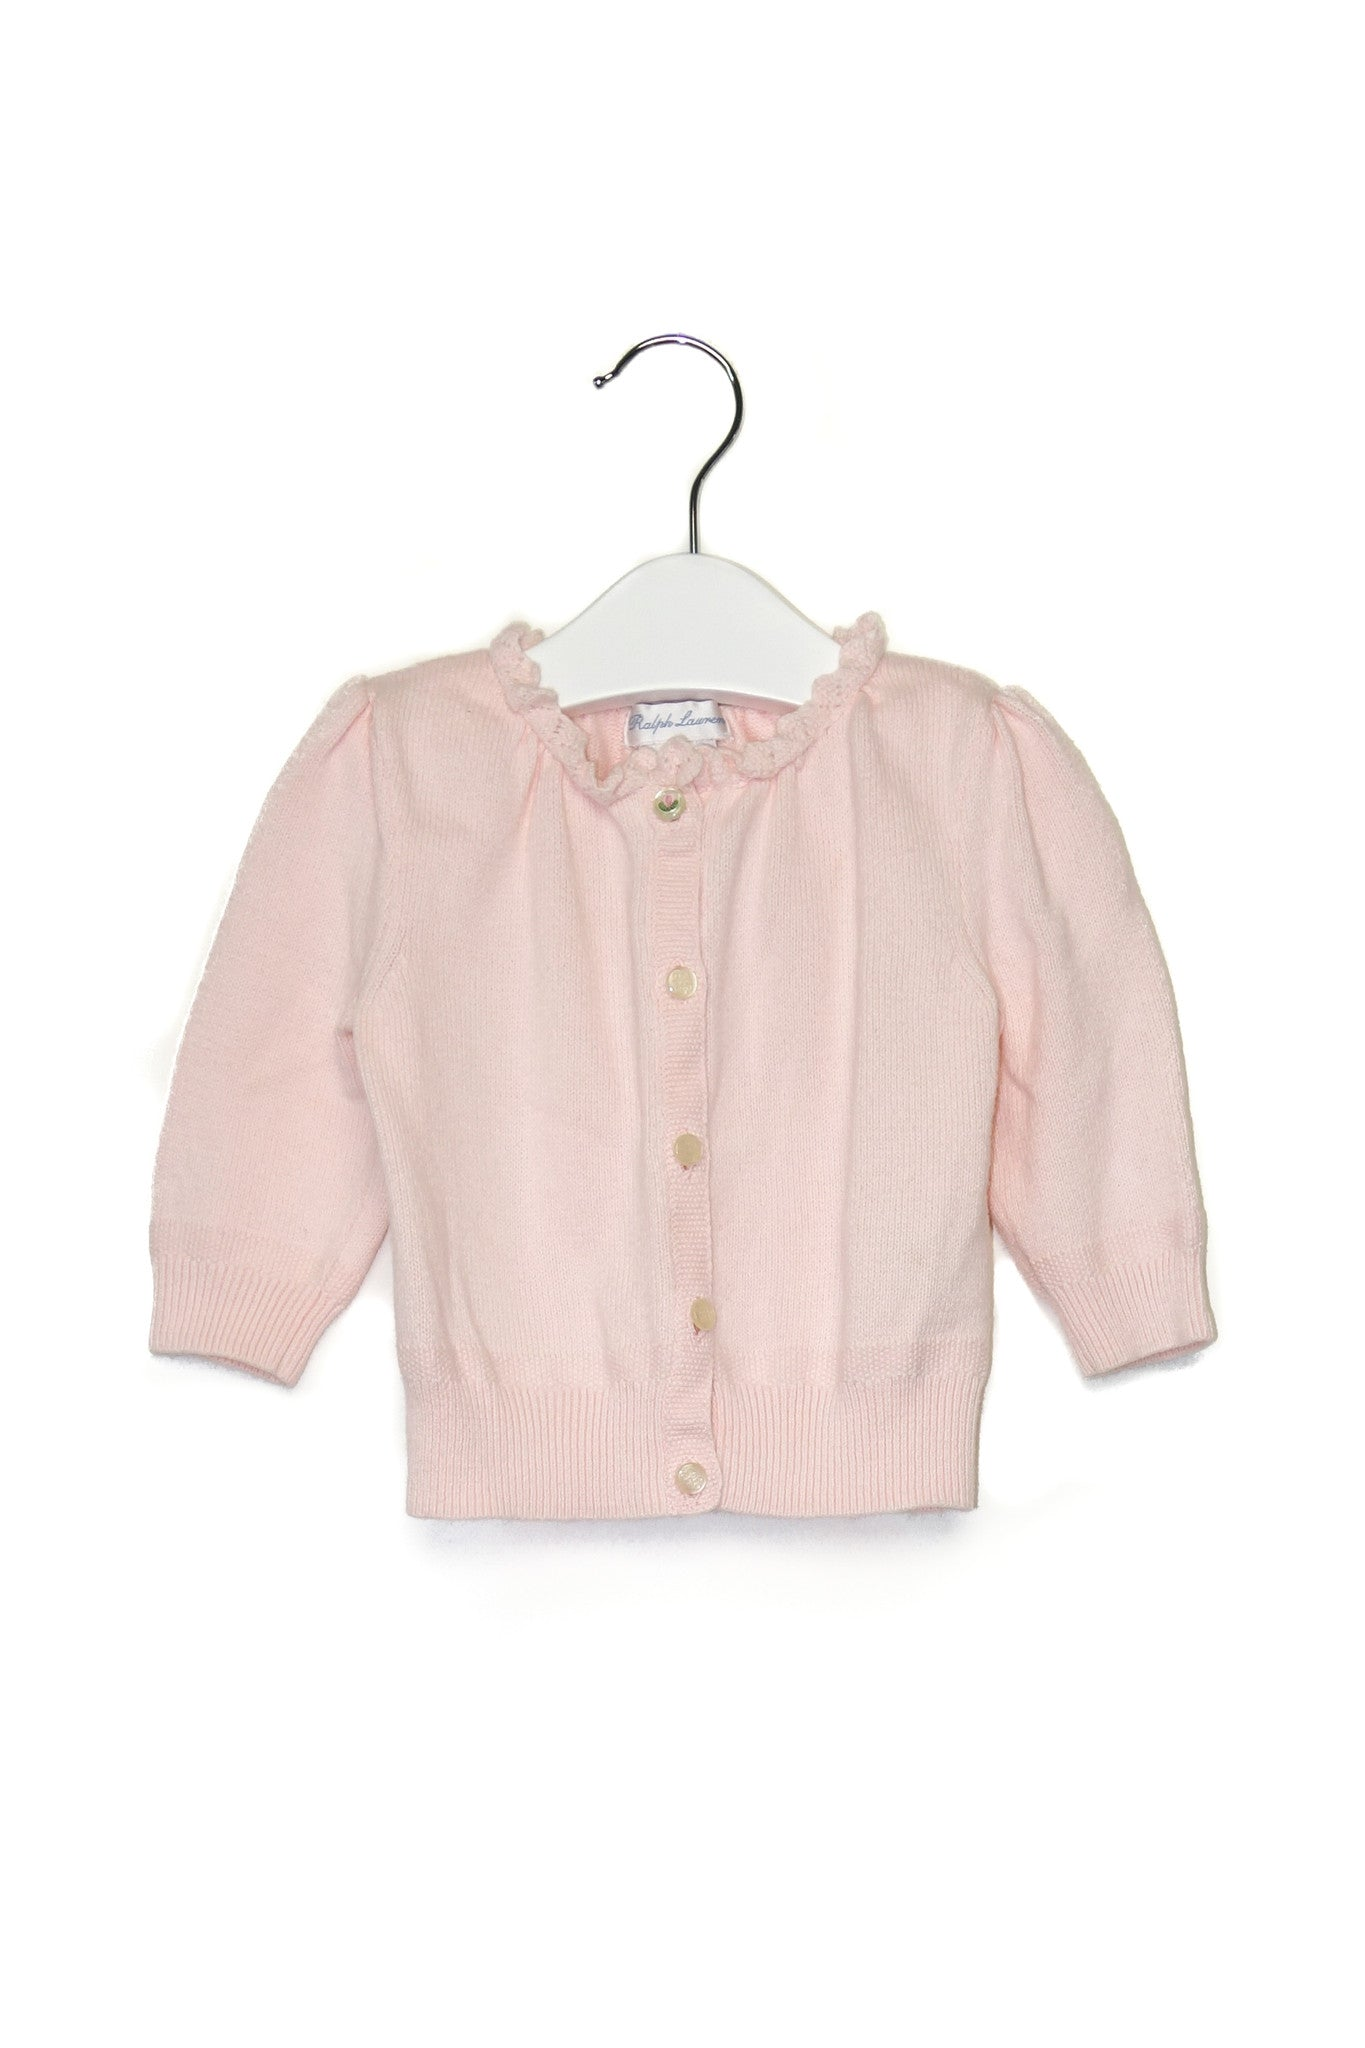 Cardigan 6M, Ralph Lauren at Retykle - Online Baby & Kids Clothing Up to 90% Off